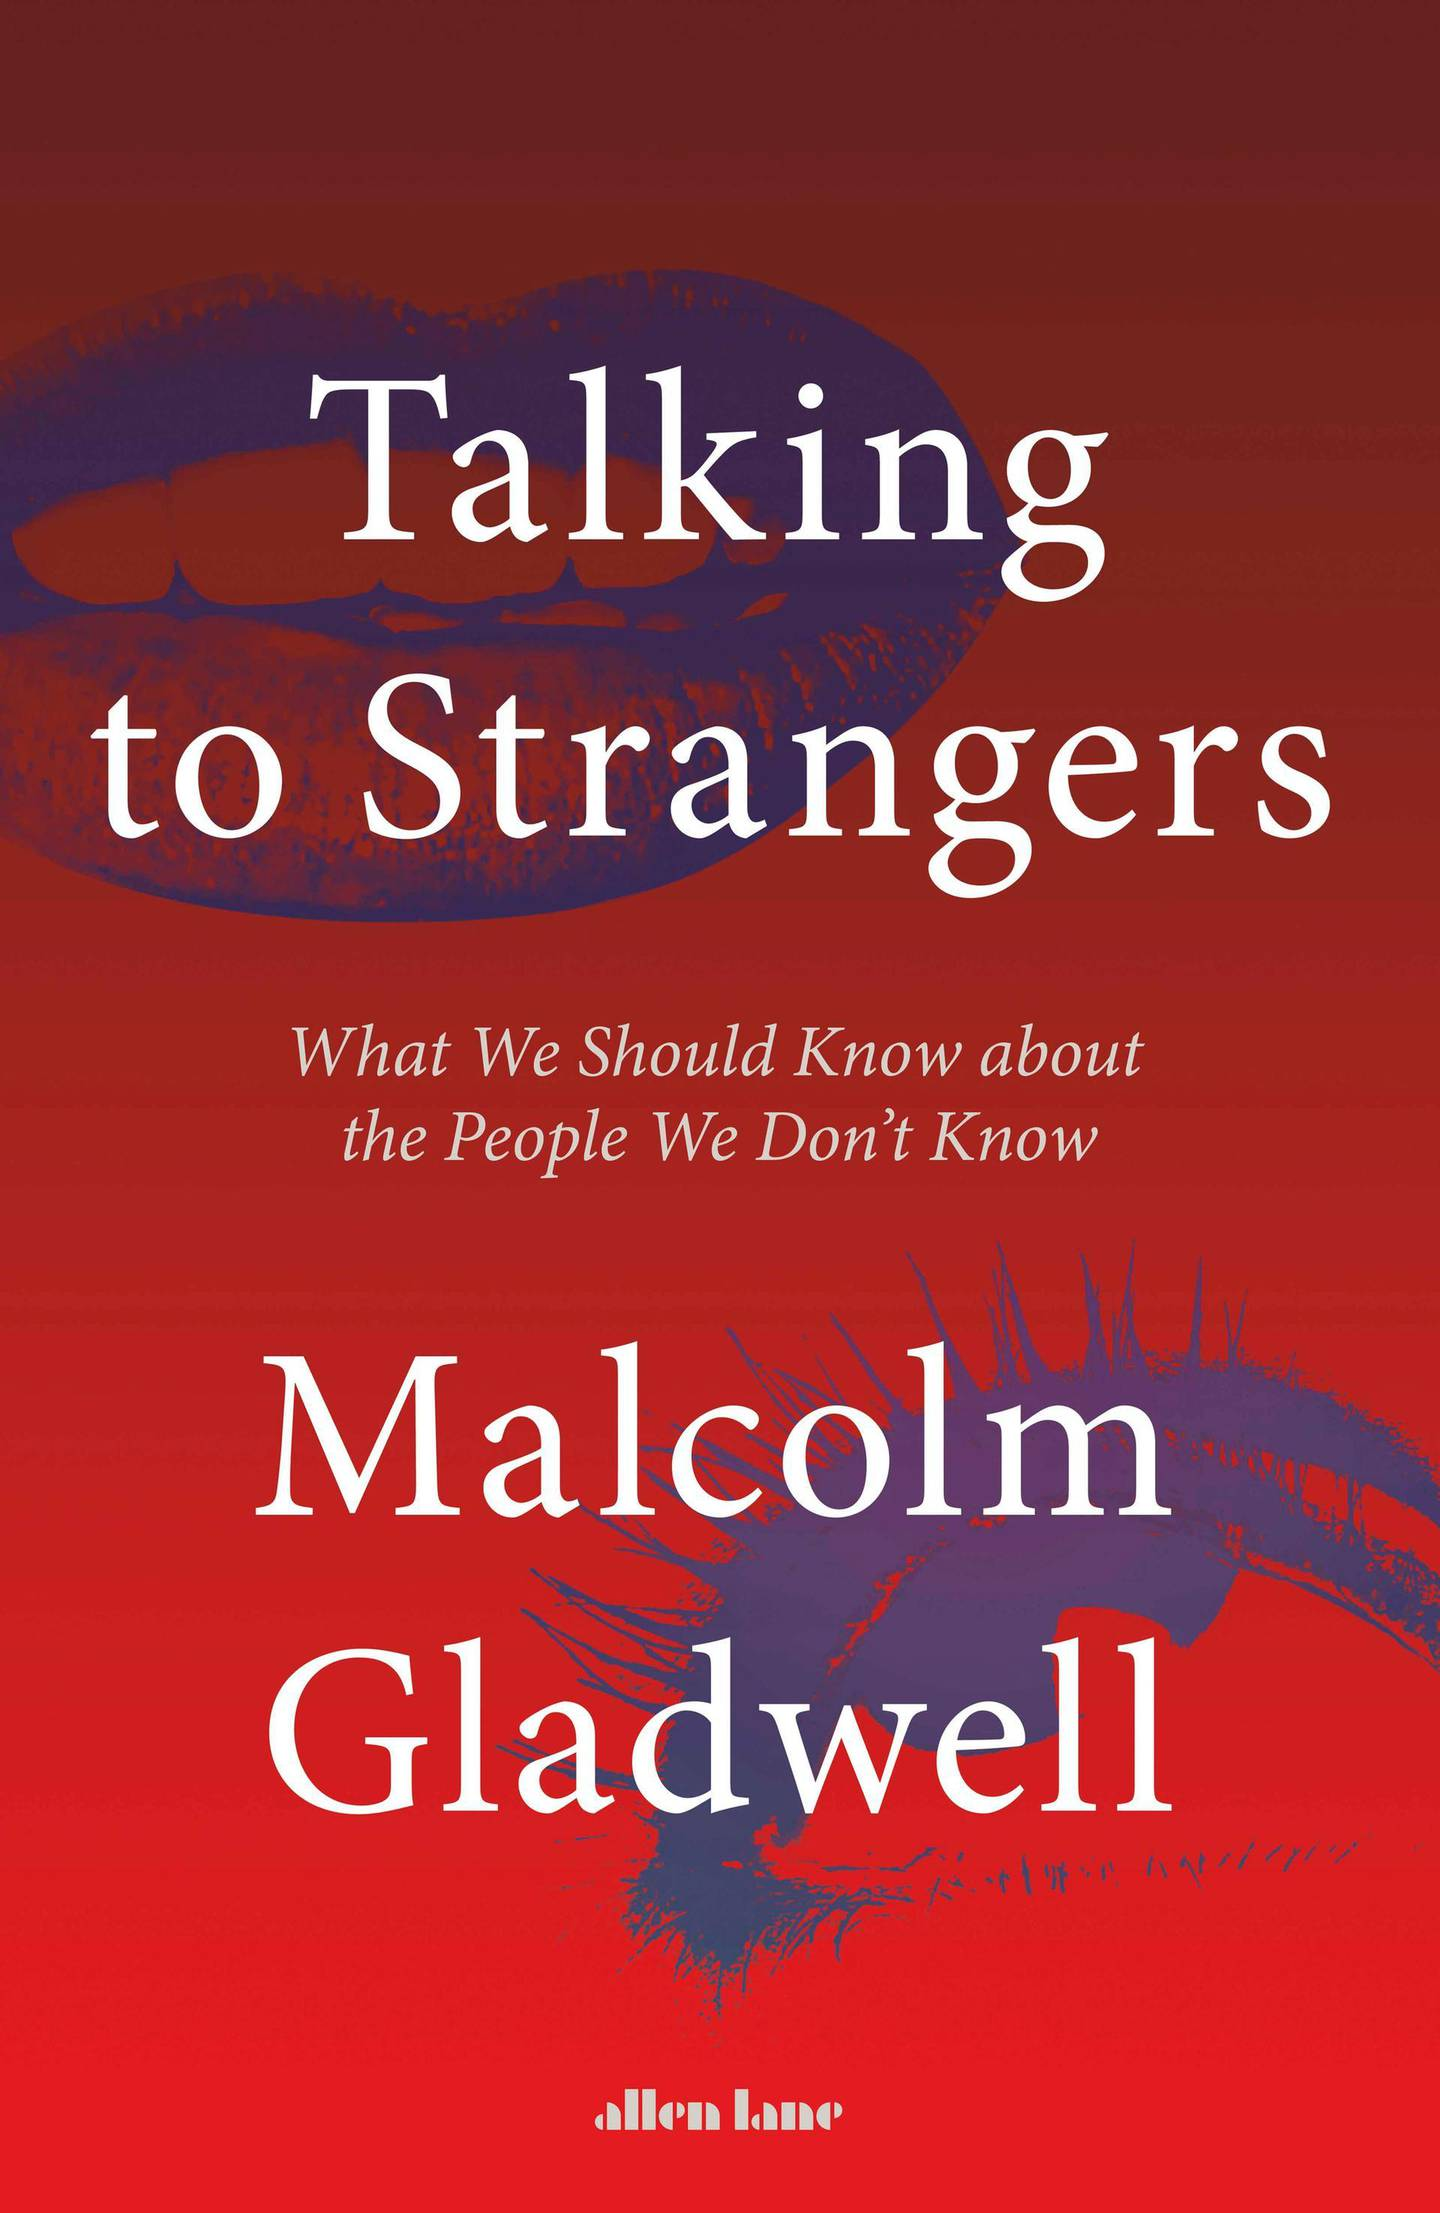 Talking to Strangers: What We Should Know about the People We Don't Know by Malcolm Gladwell published by Allen Lane. Courtesy Penguin UK